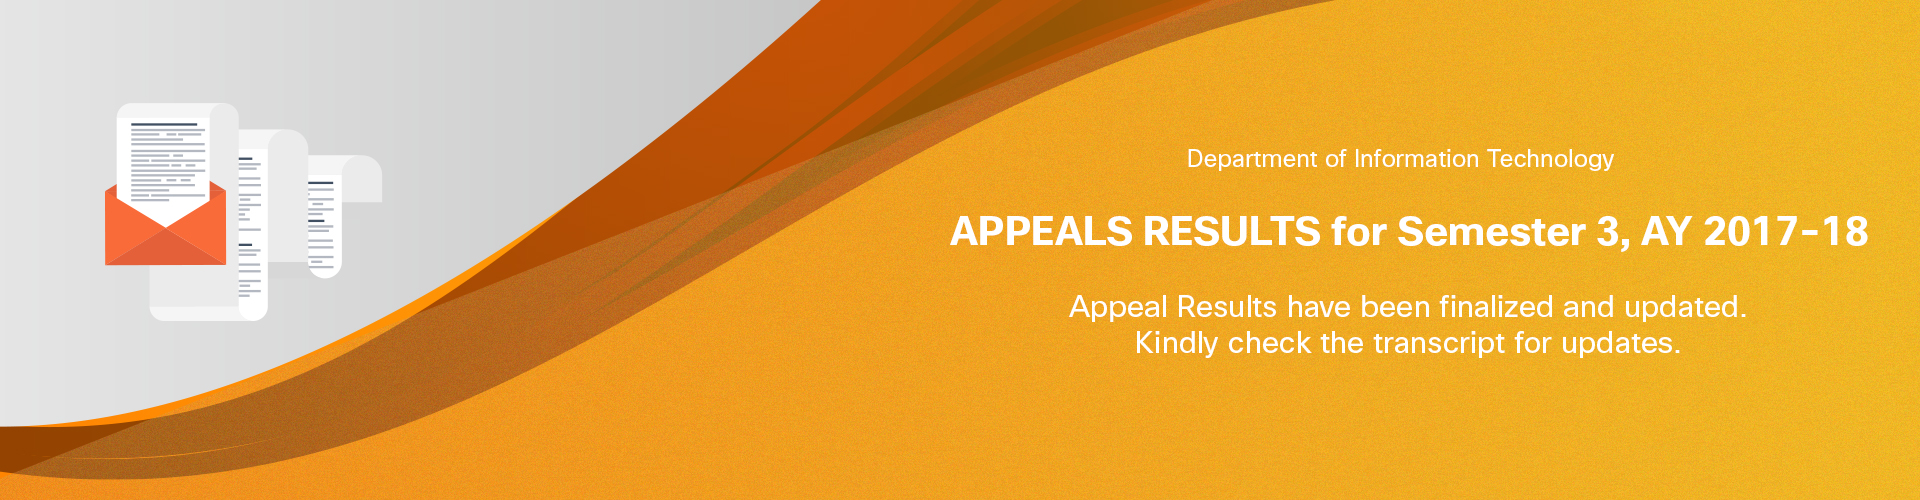 IT Appeals Results